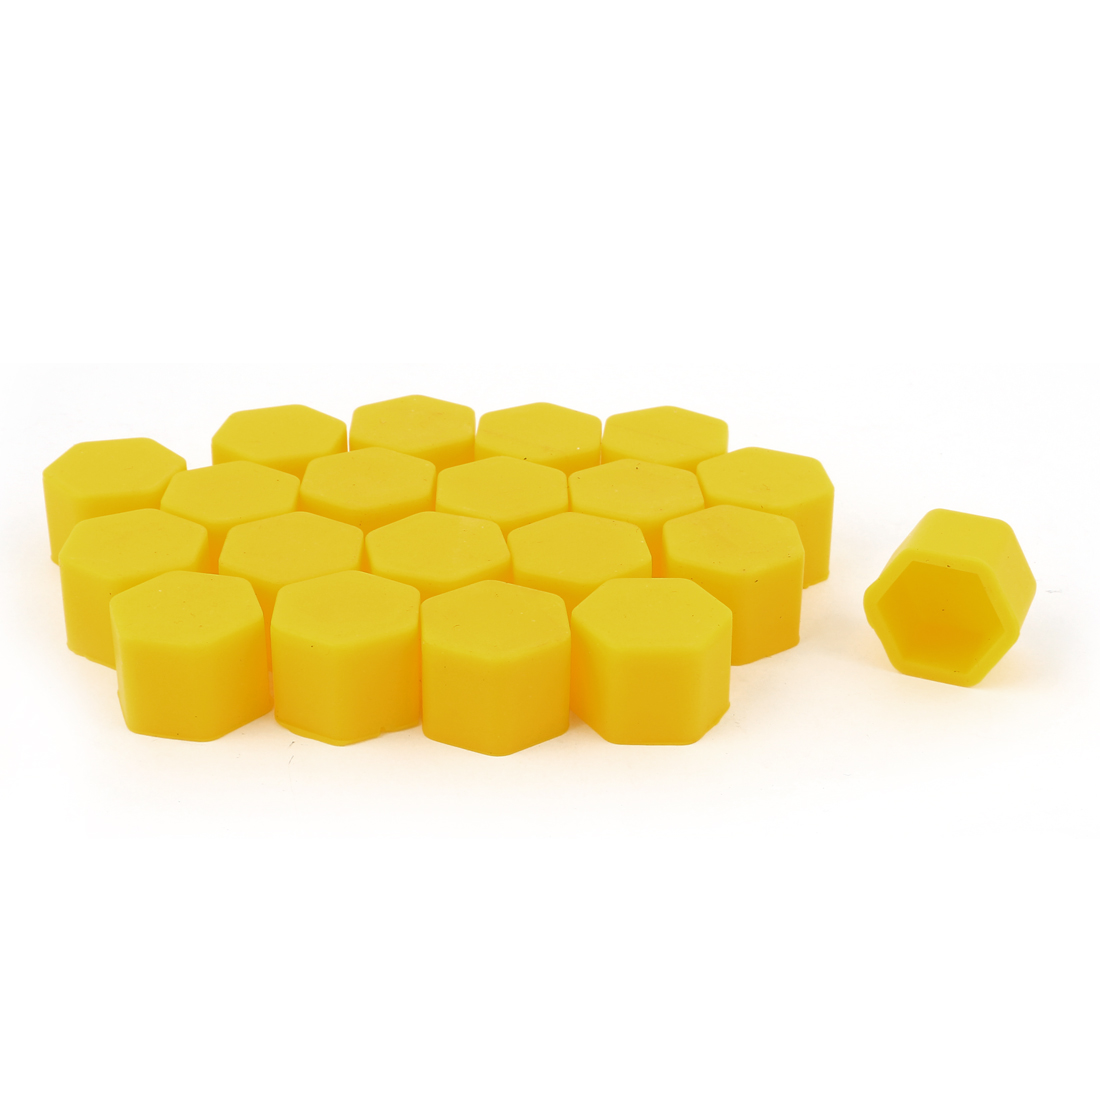 20pcs Yellow Silicone Car Wheel Tyres Hex Lugs Nuts Bolts Hub Screw Dust Covers Caps 19mm